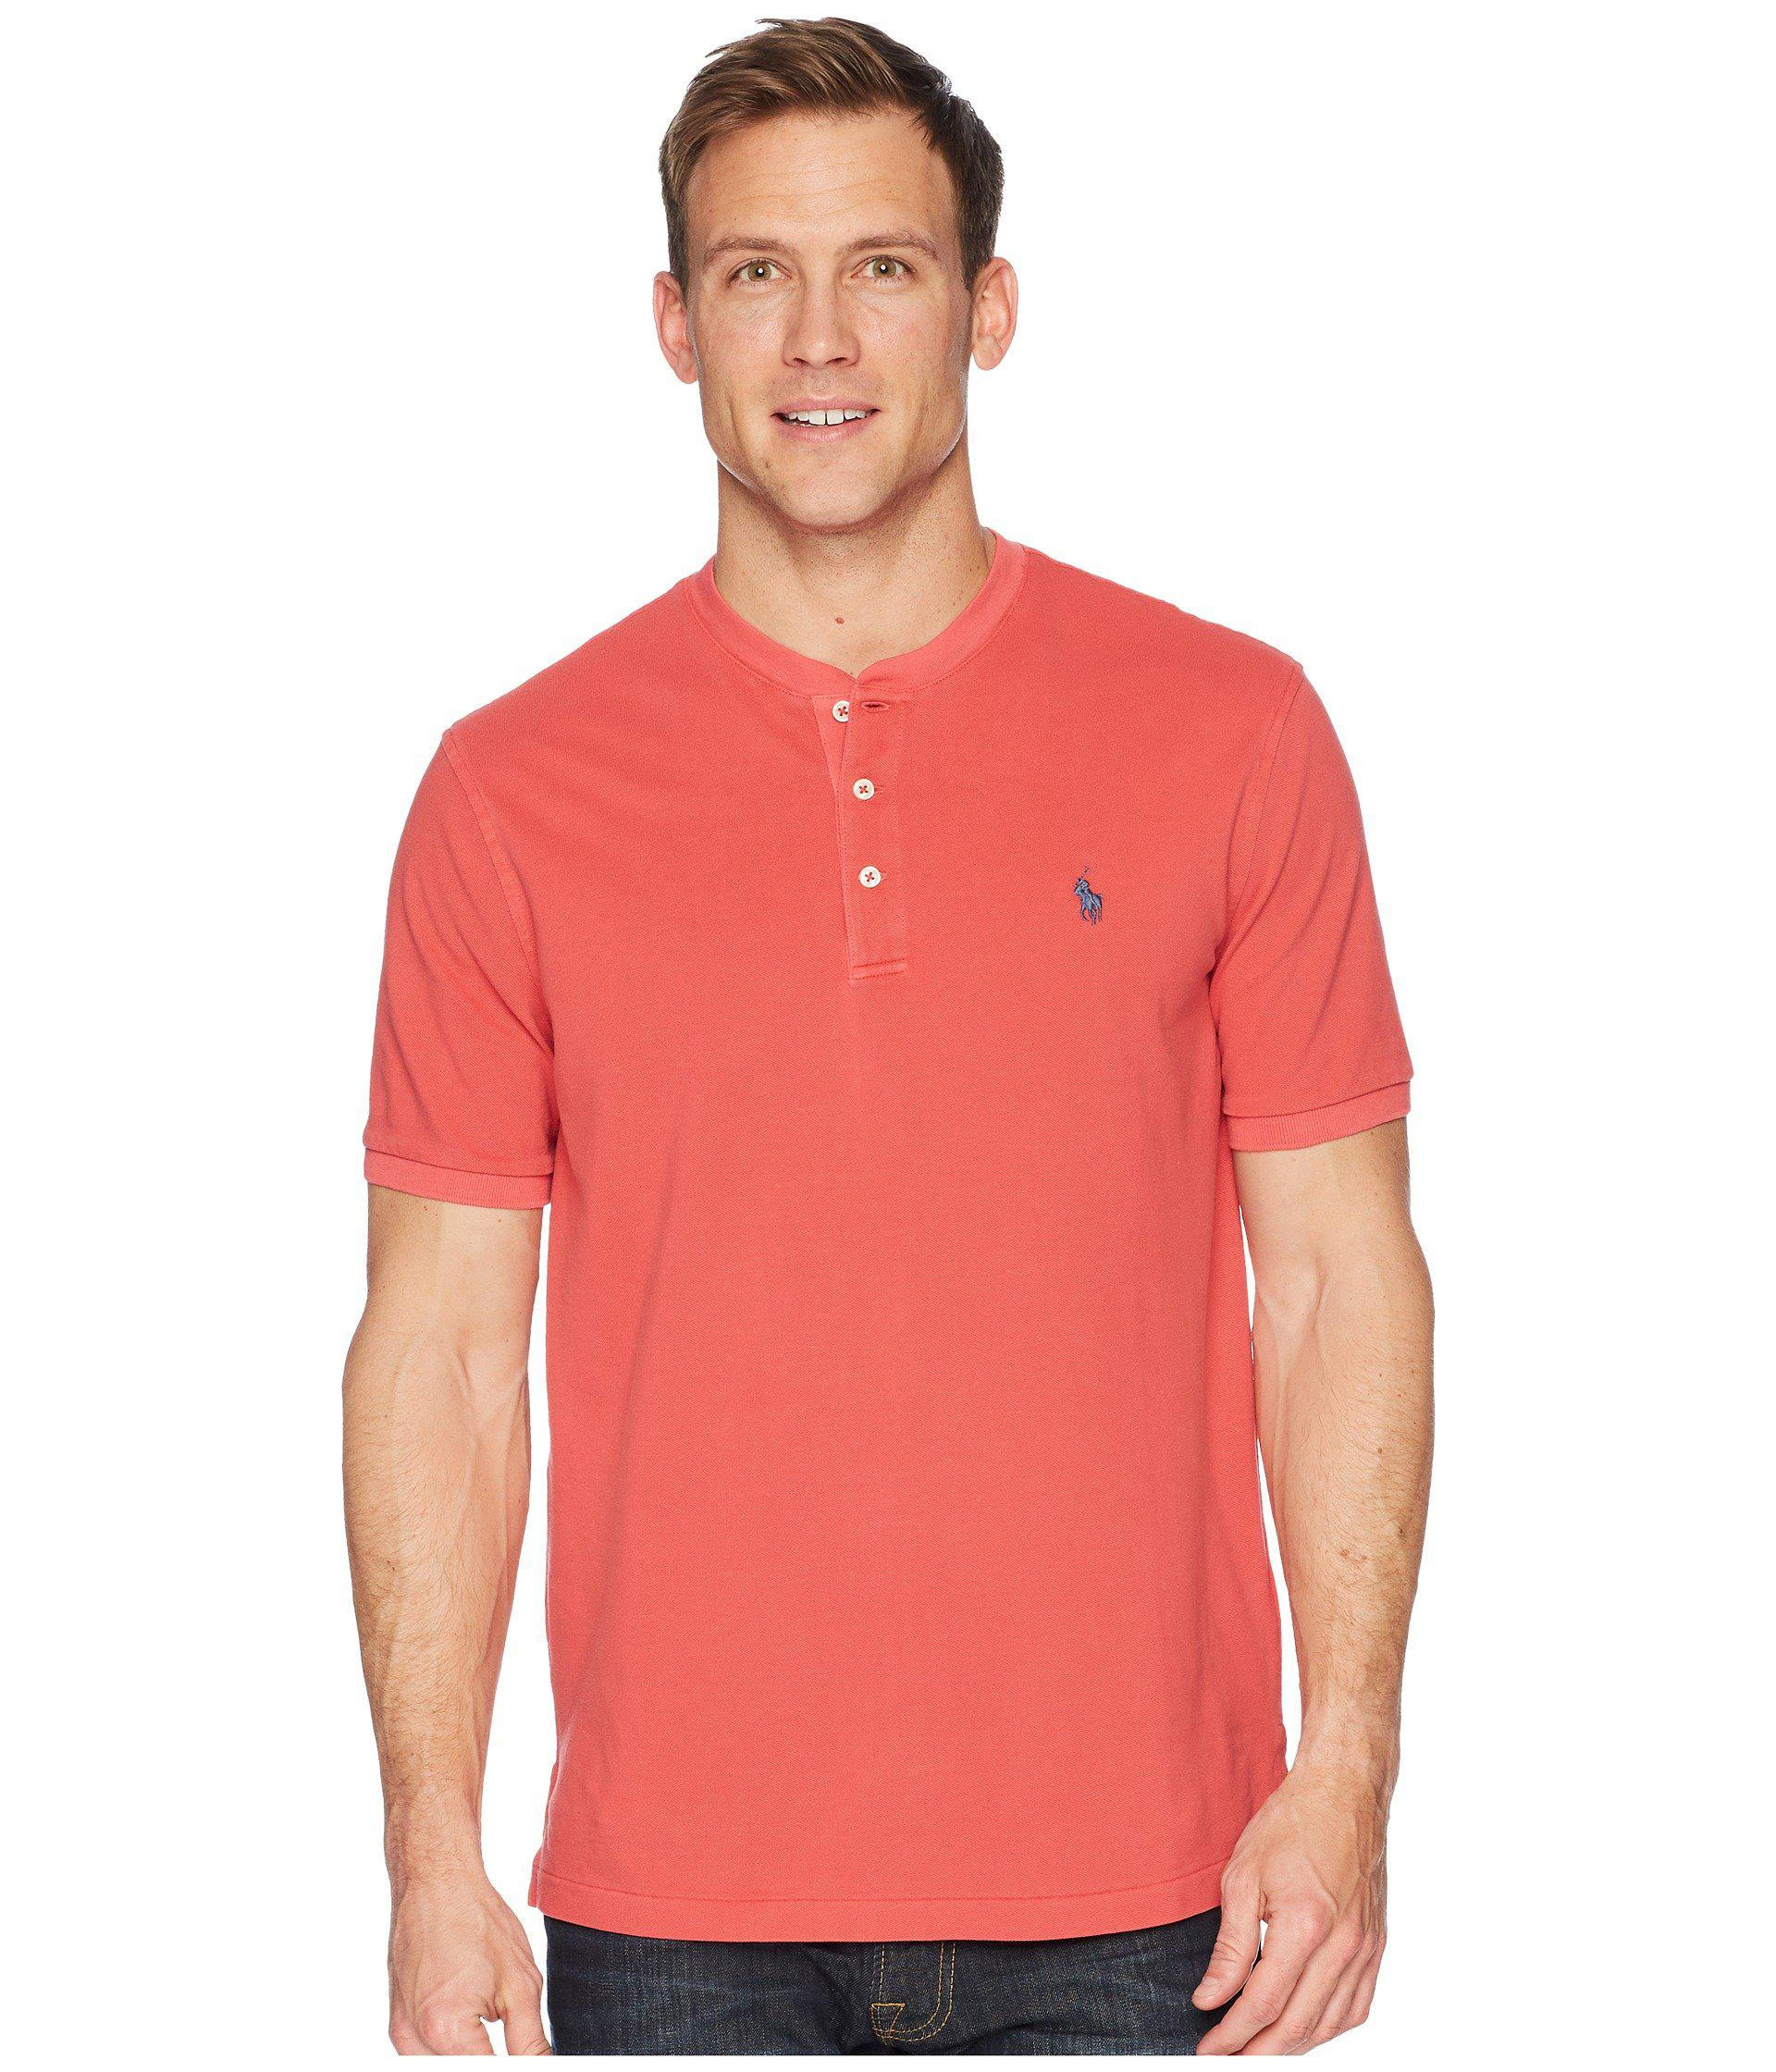 79b92a5d3 Polo Ralph Lauren Featherweight Mesh Short Sleeve Knit Henley in Red ...